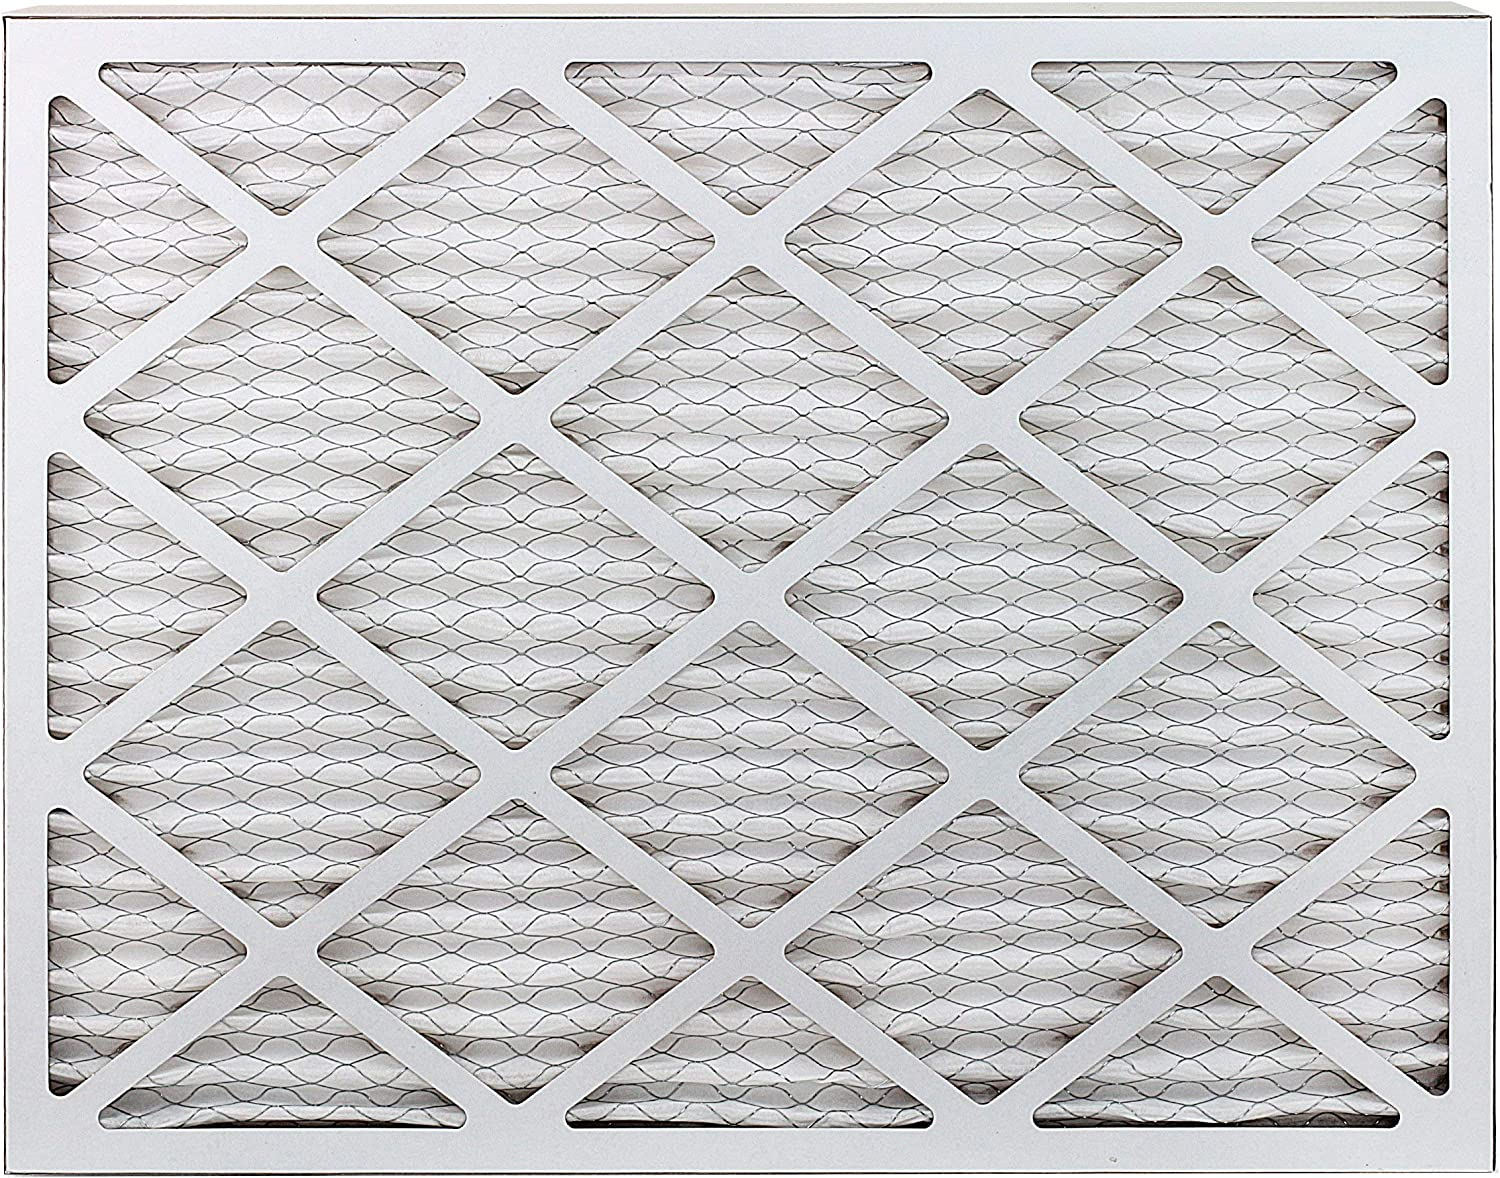 FilterBuy AFB MERV 8 20x25x1 Pleated AC Furnace Air Filter, 20x25x1 Silver Pack of 4 Filters Renewed